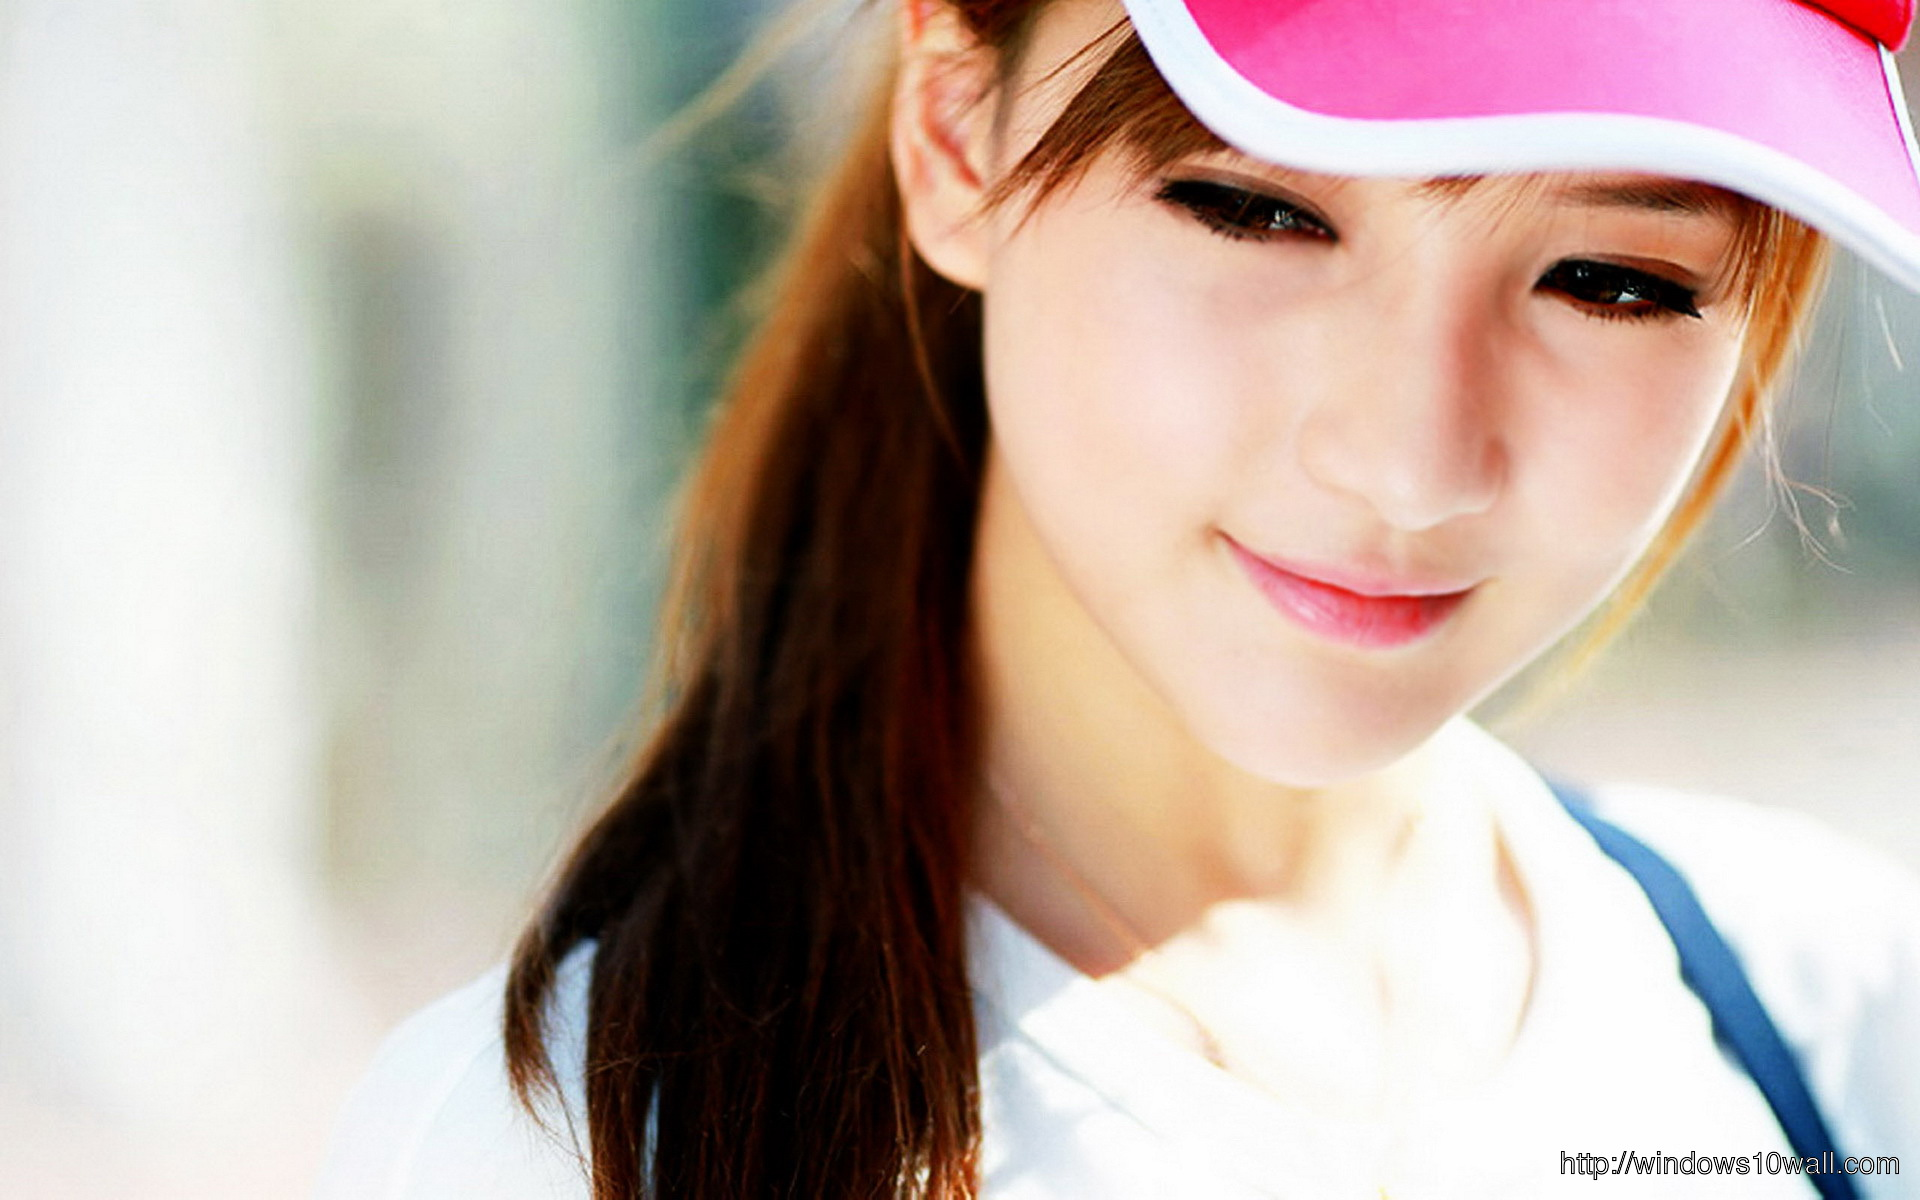 Gorgeous Asian Girl Background Wallpaper